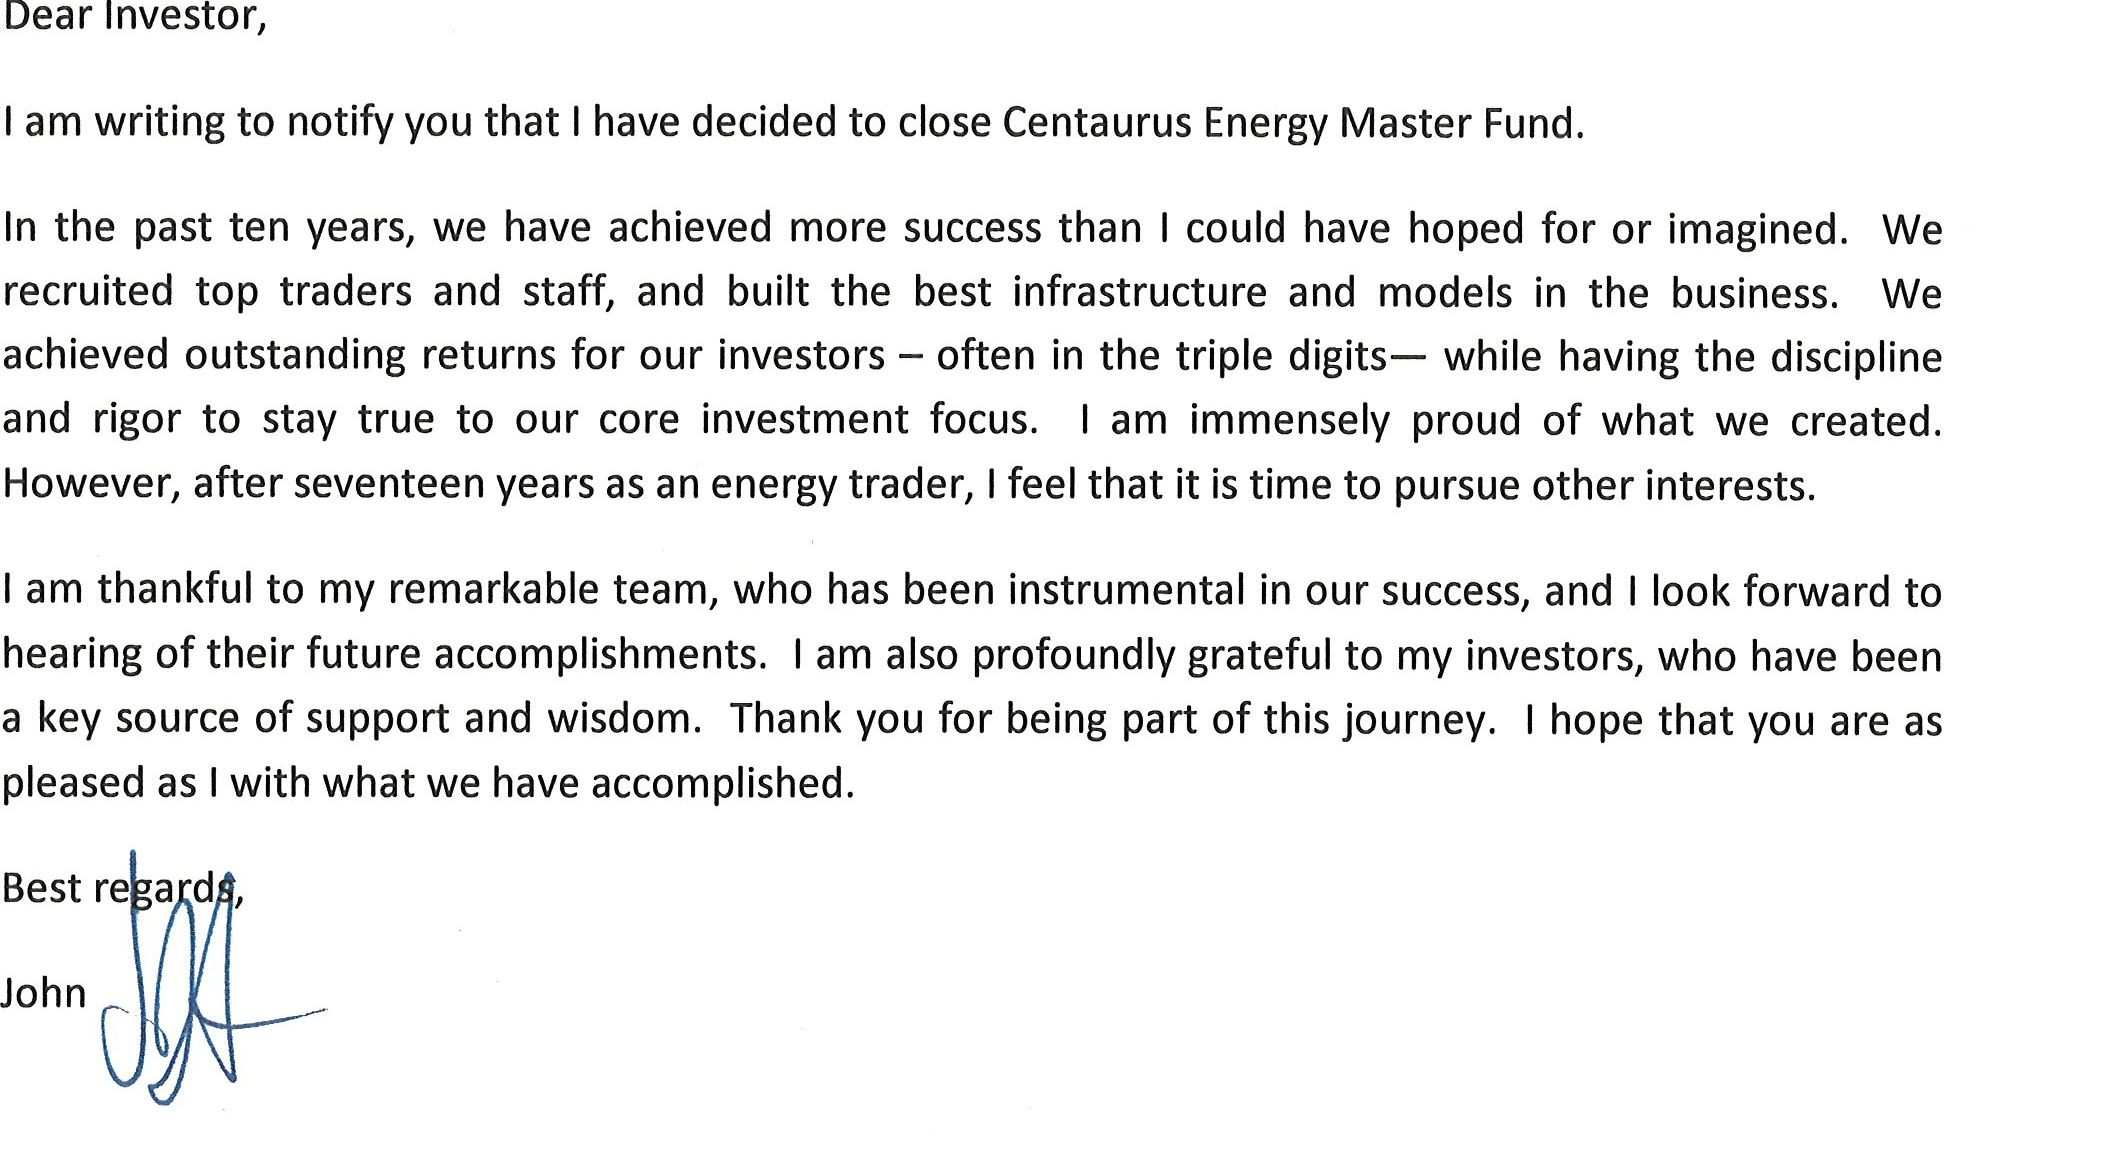 John Arnold Closing Centaurus Energy Master Fund As Central Goodbye